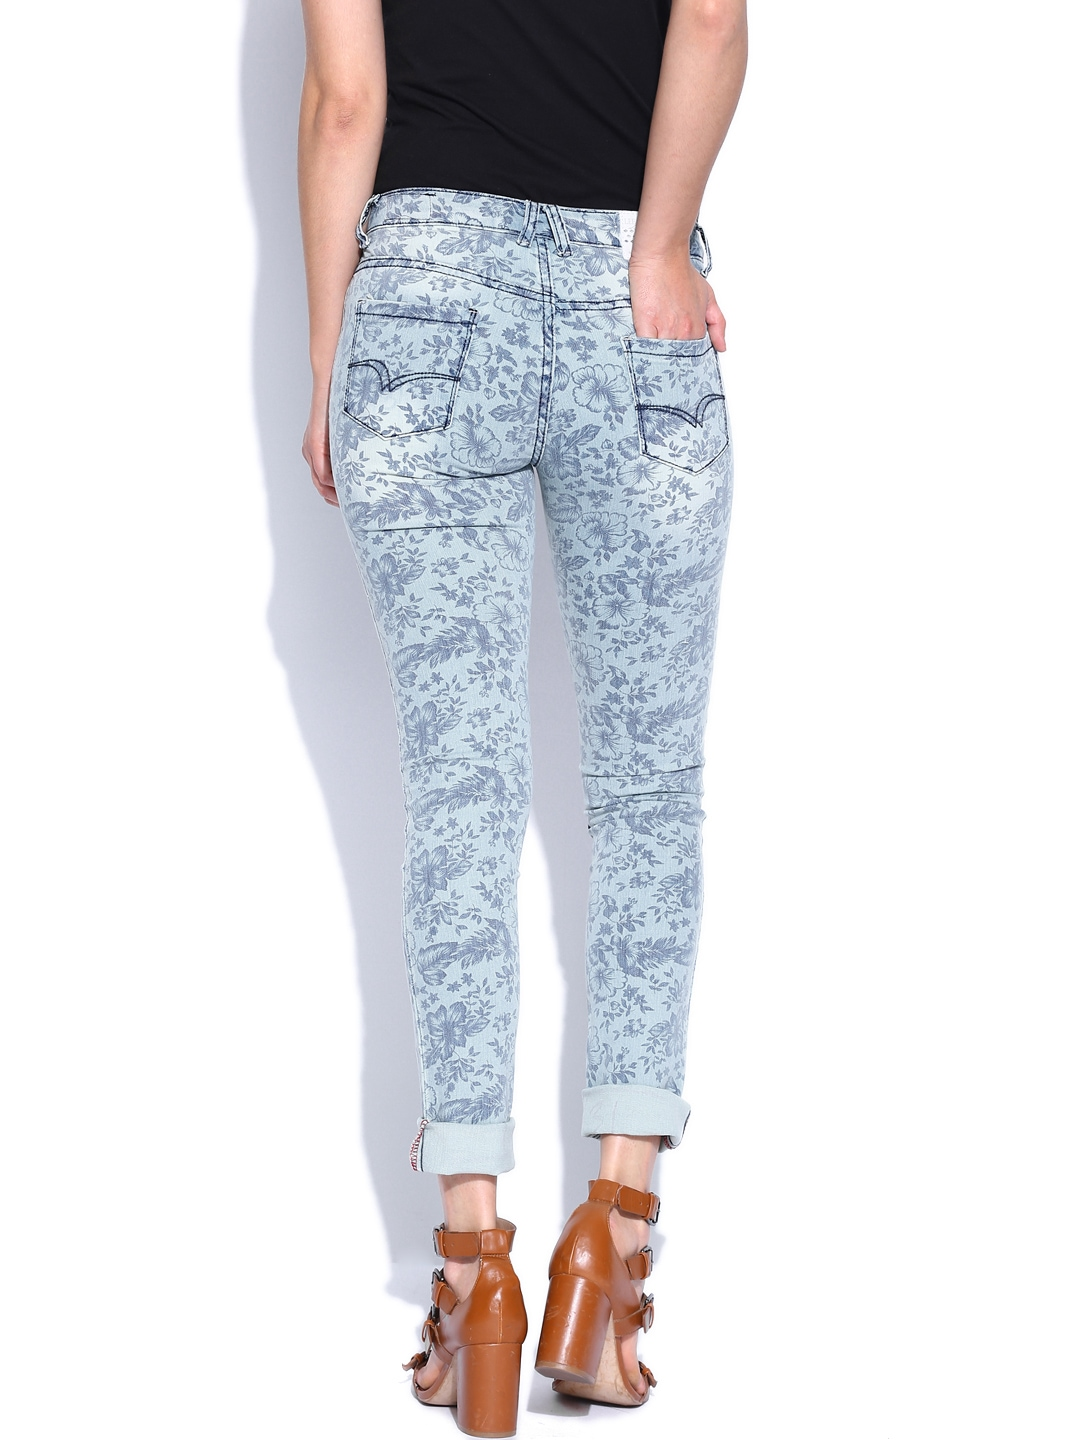 lee cooper jeans for women - photo #47